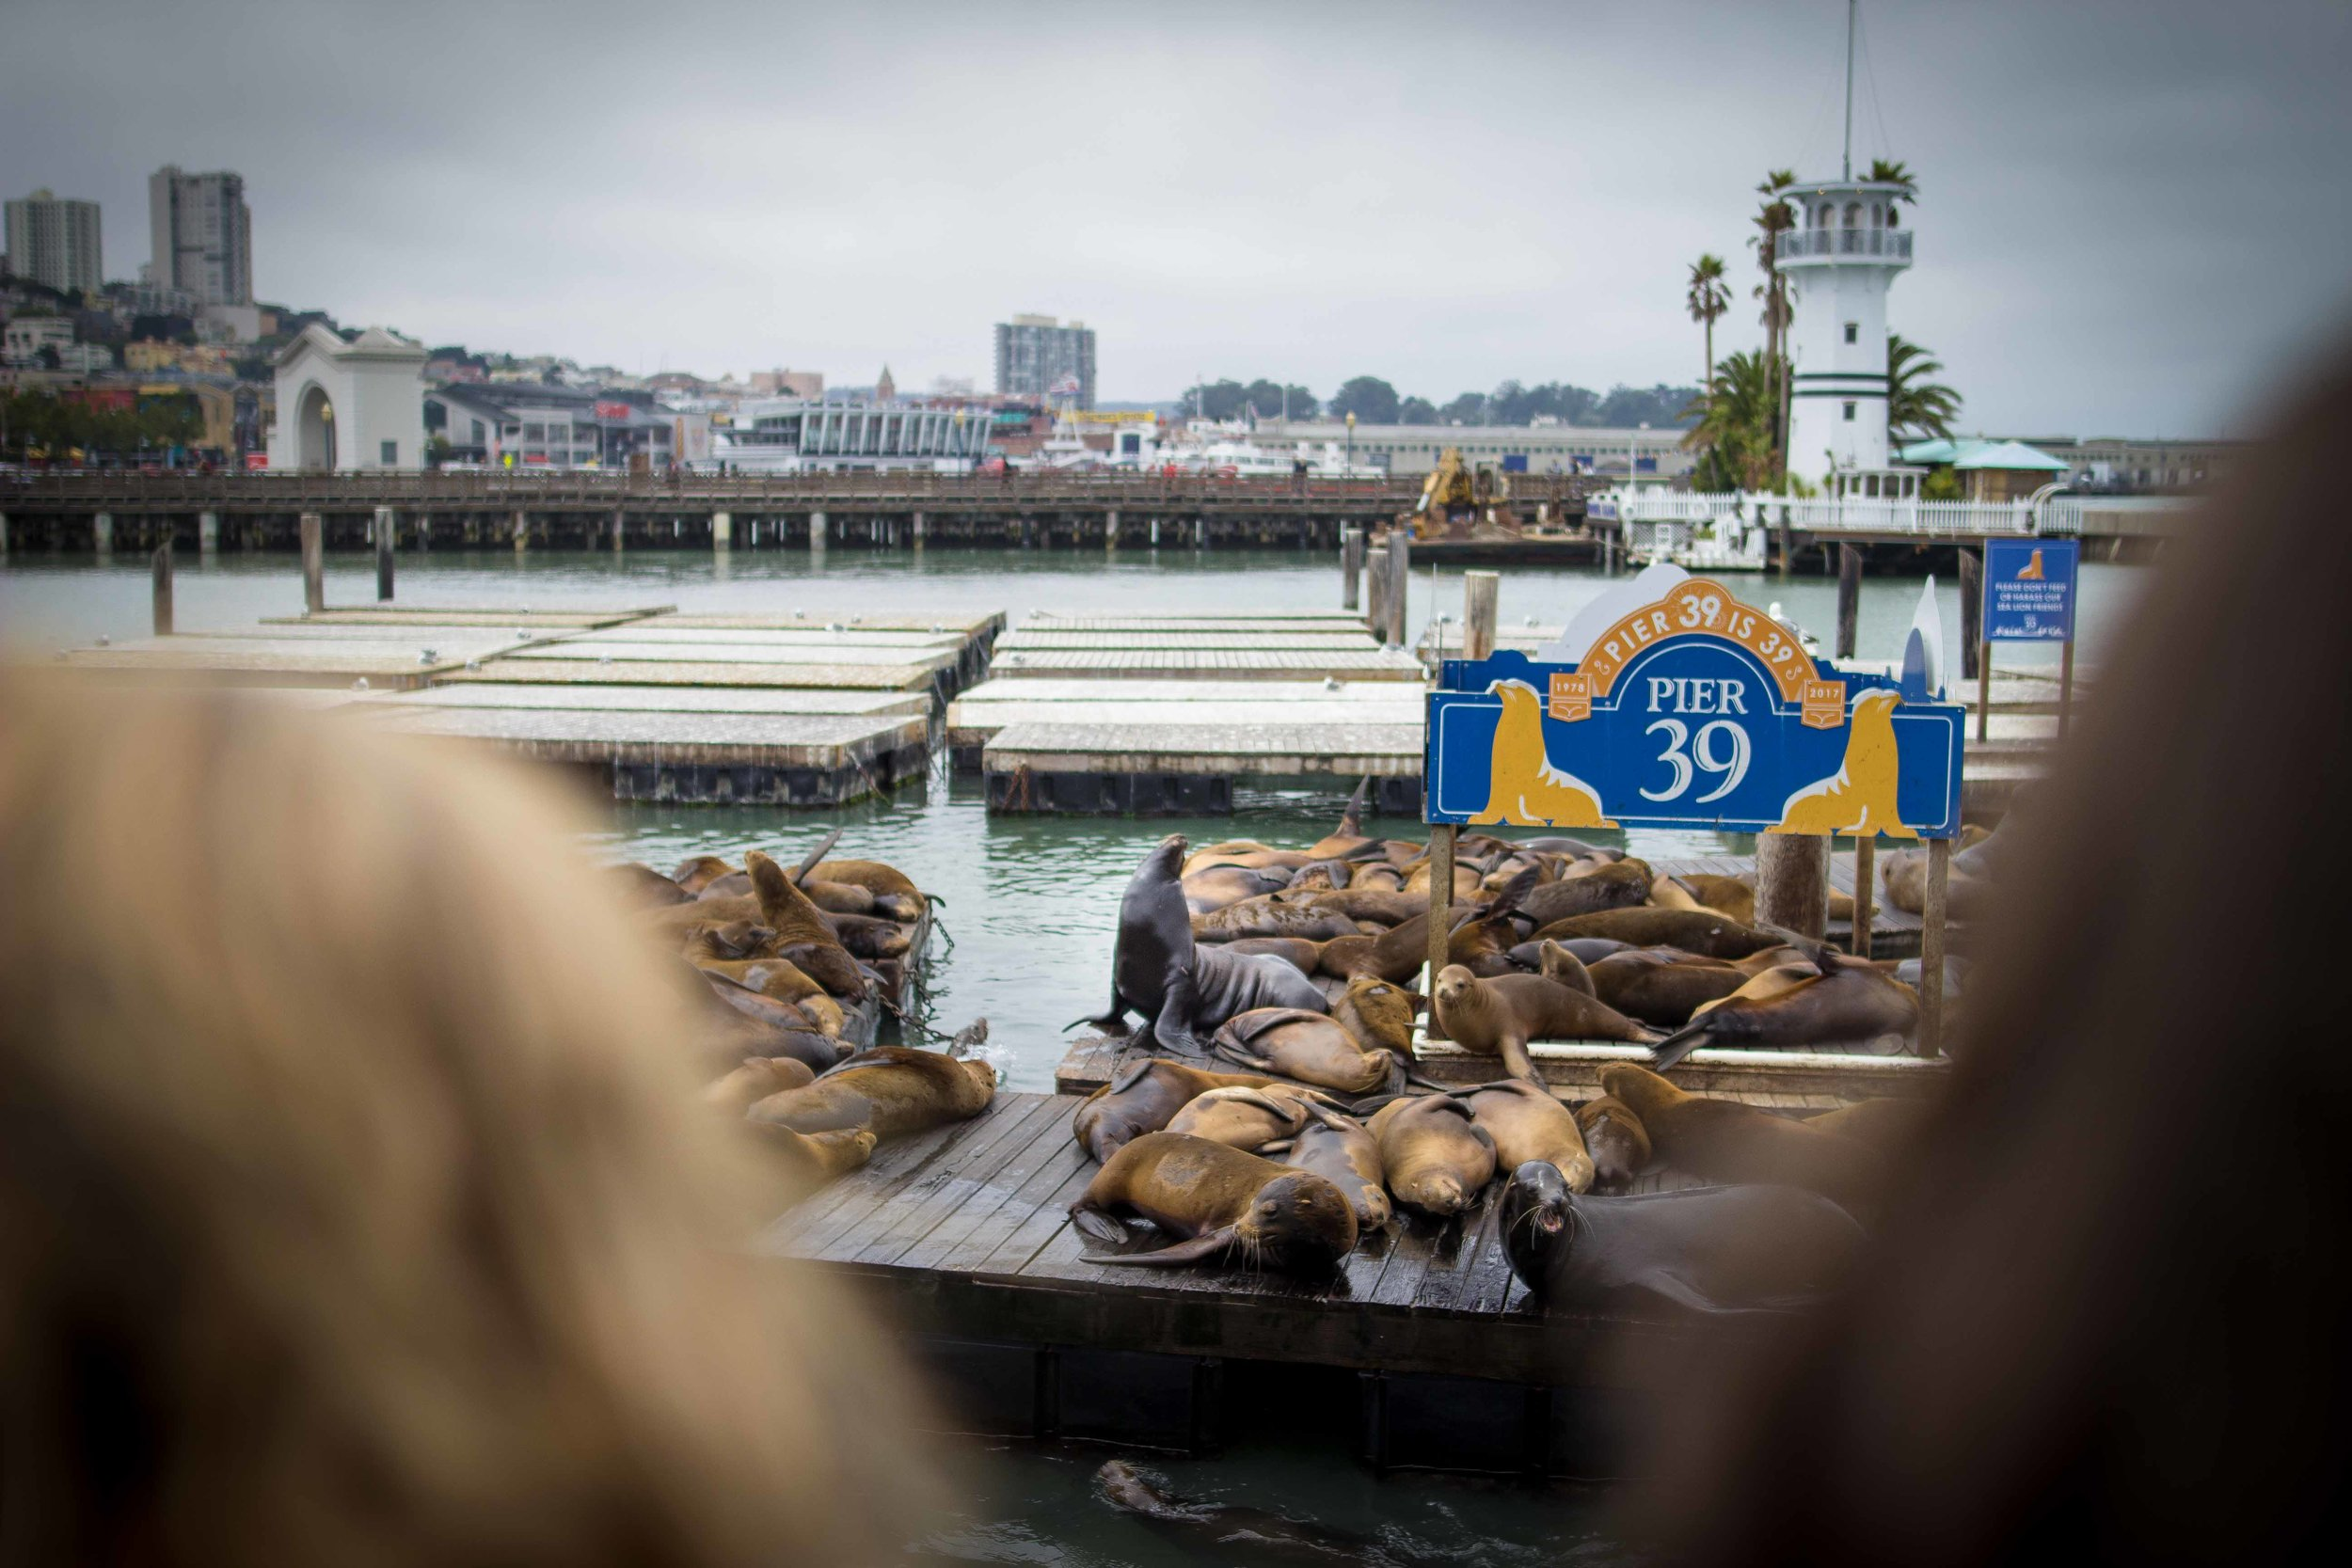 At the end of Pier 39 is approximately one million seals (ok closer to 1,000). I found  this 1990 Good Morning America segment  that documents their arrival.